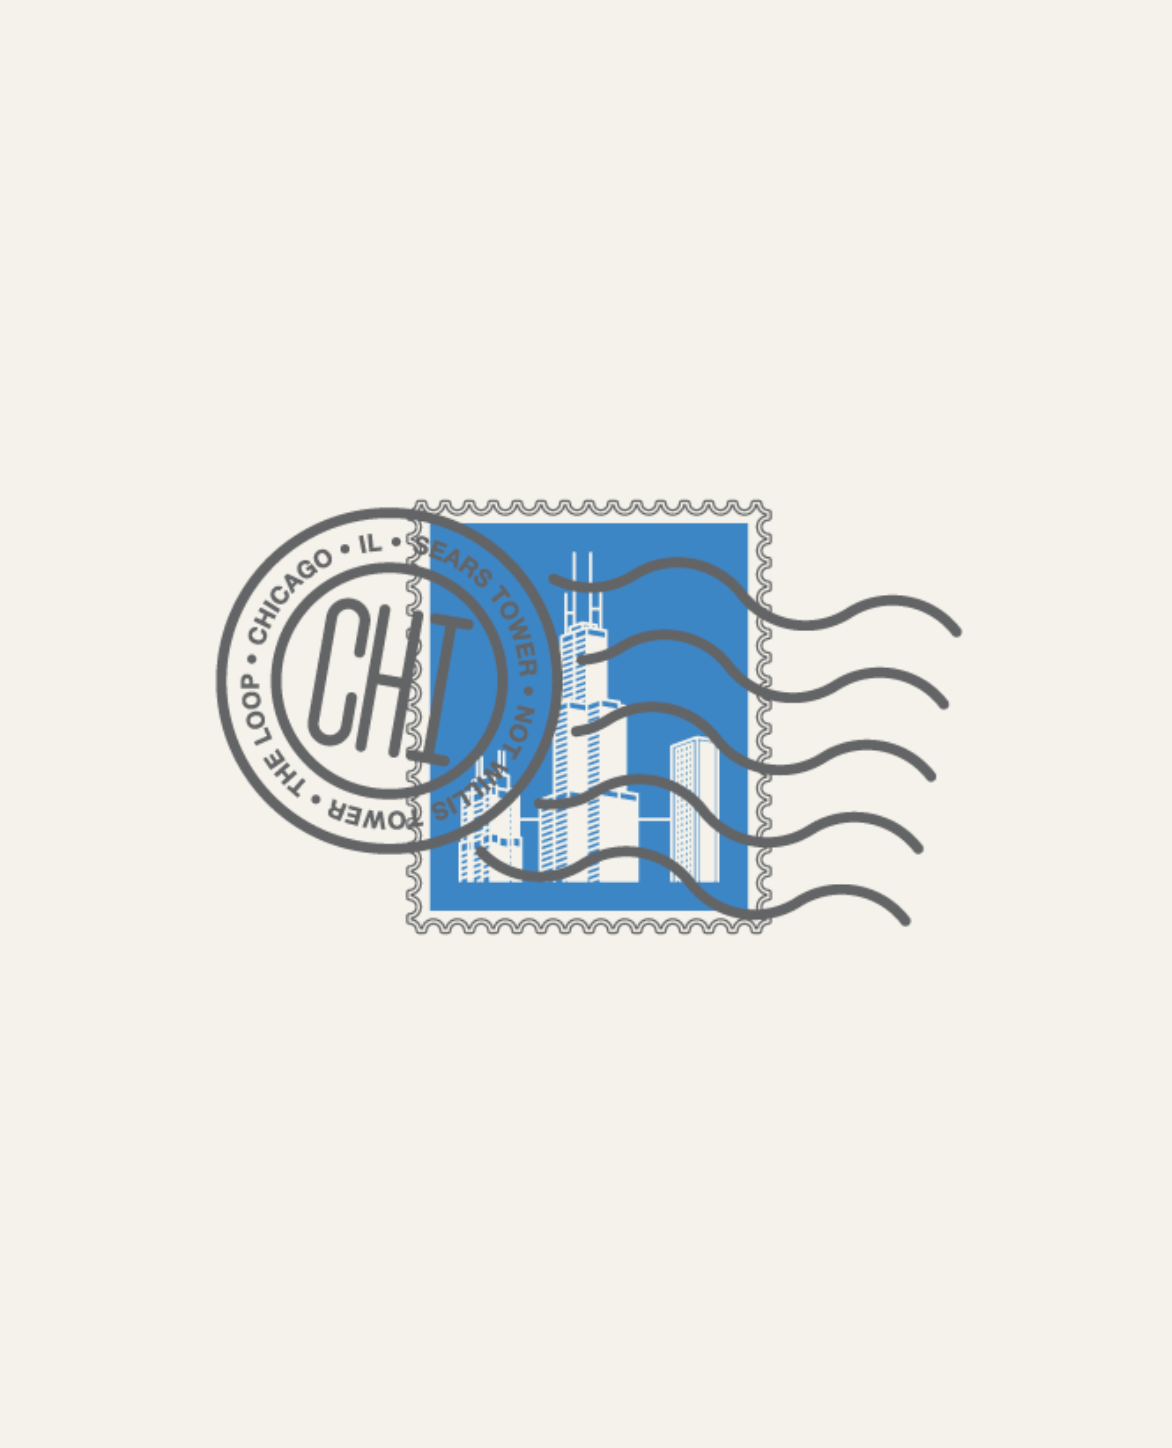 Sears Tower, Chicago IL Stamp by Sean Mort